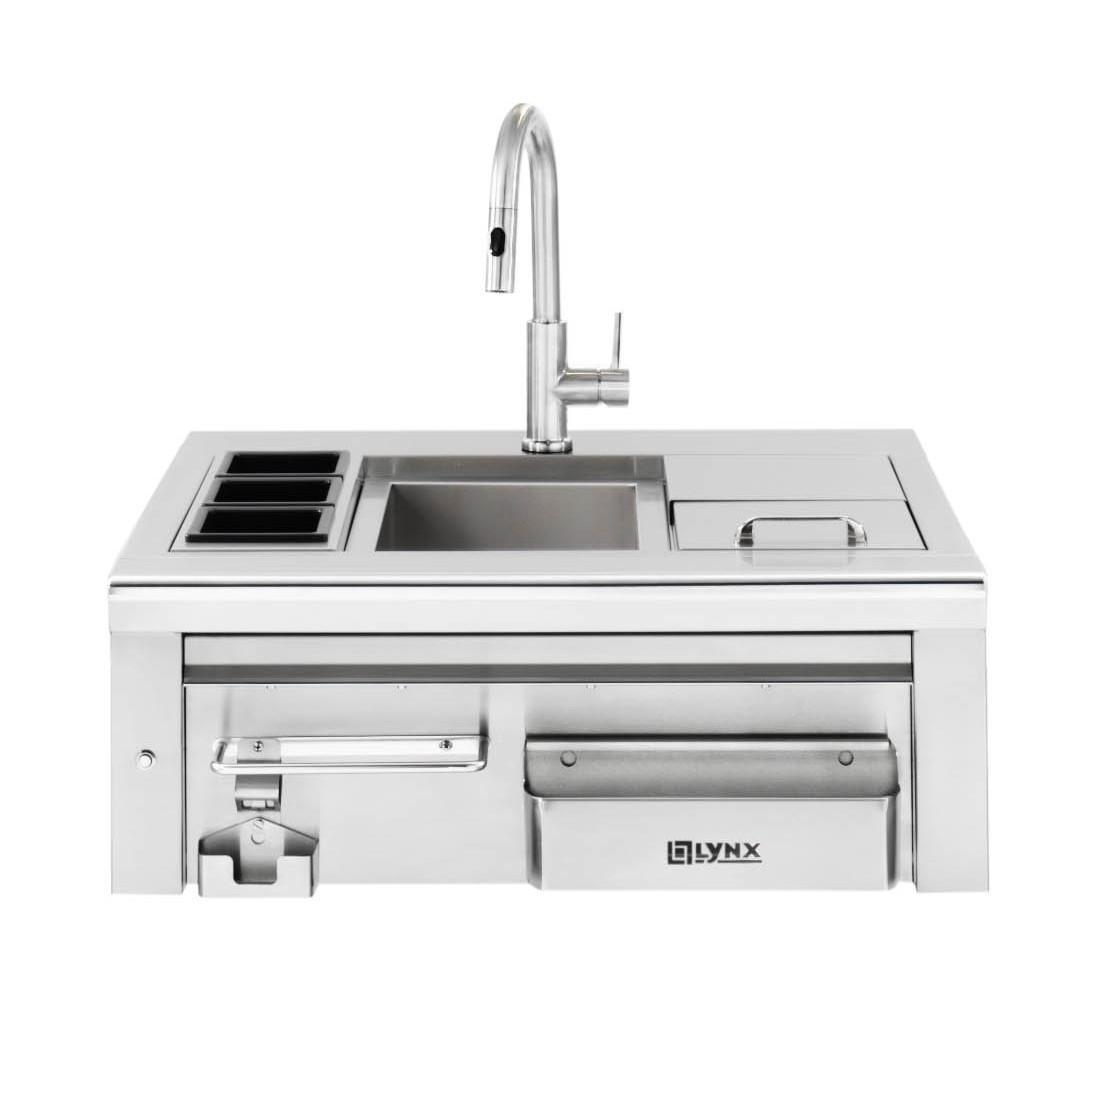 Lynx 30 Inch Built In Cocktail Station W/ Sink & Ice Bin Cooler